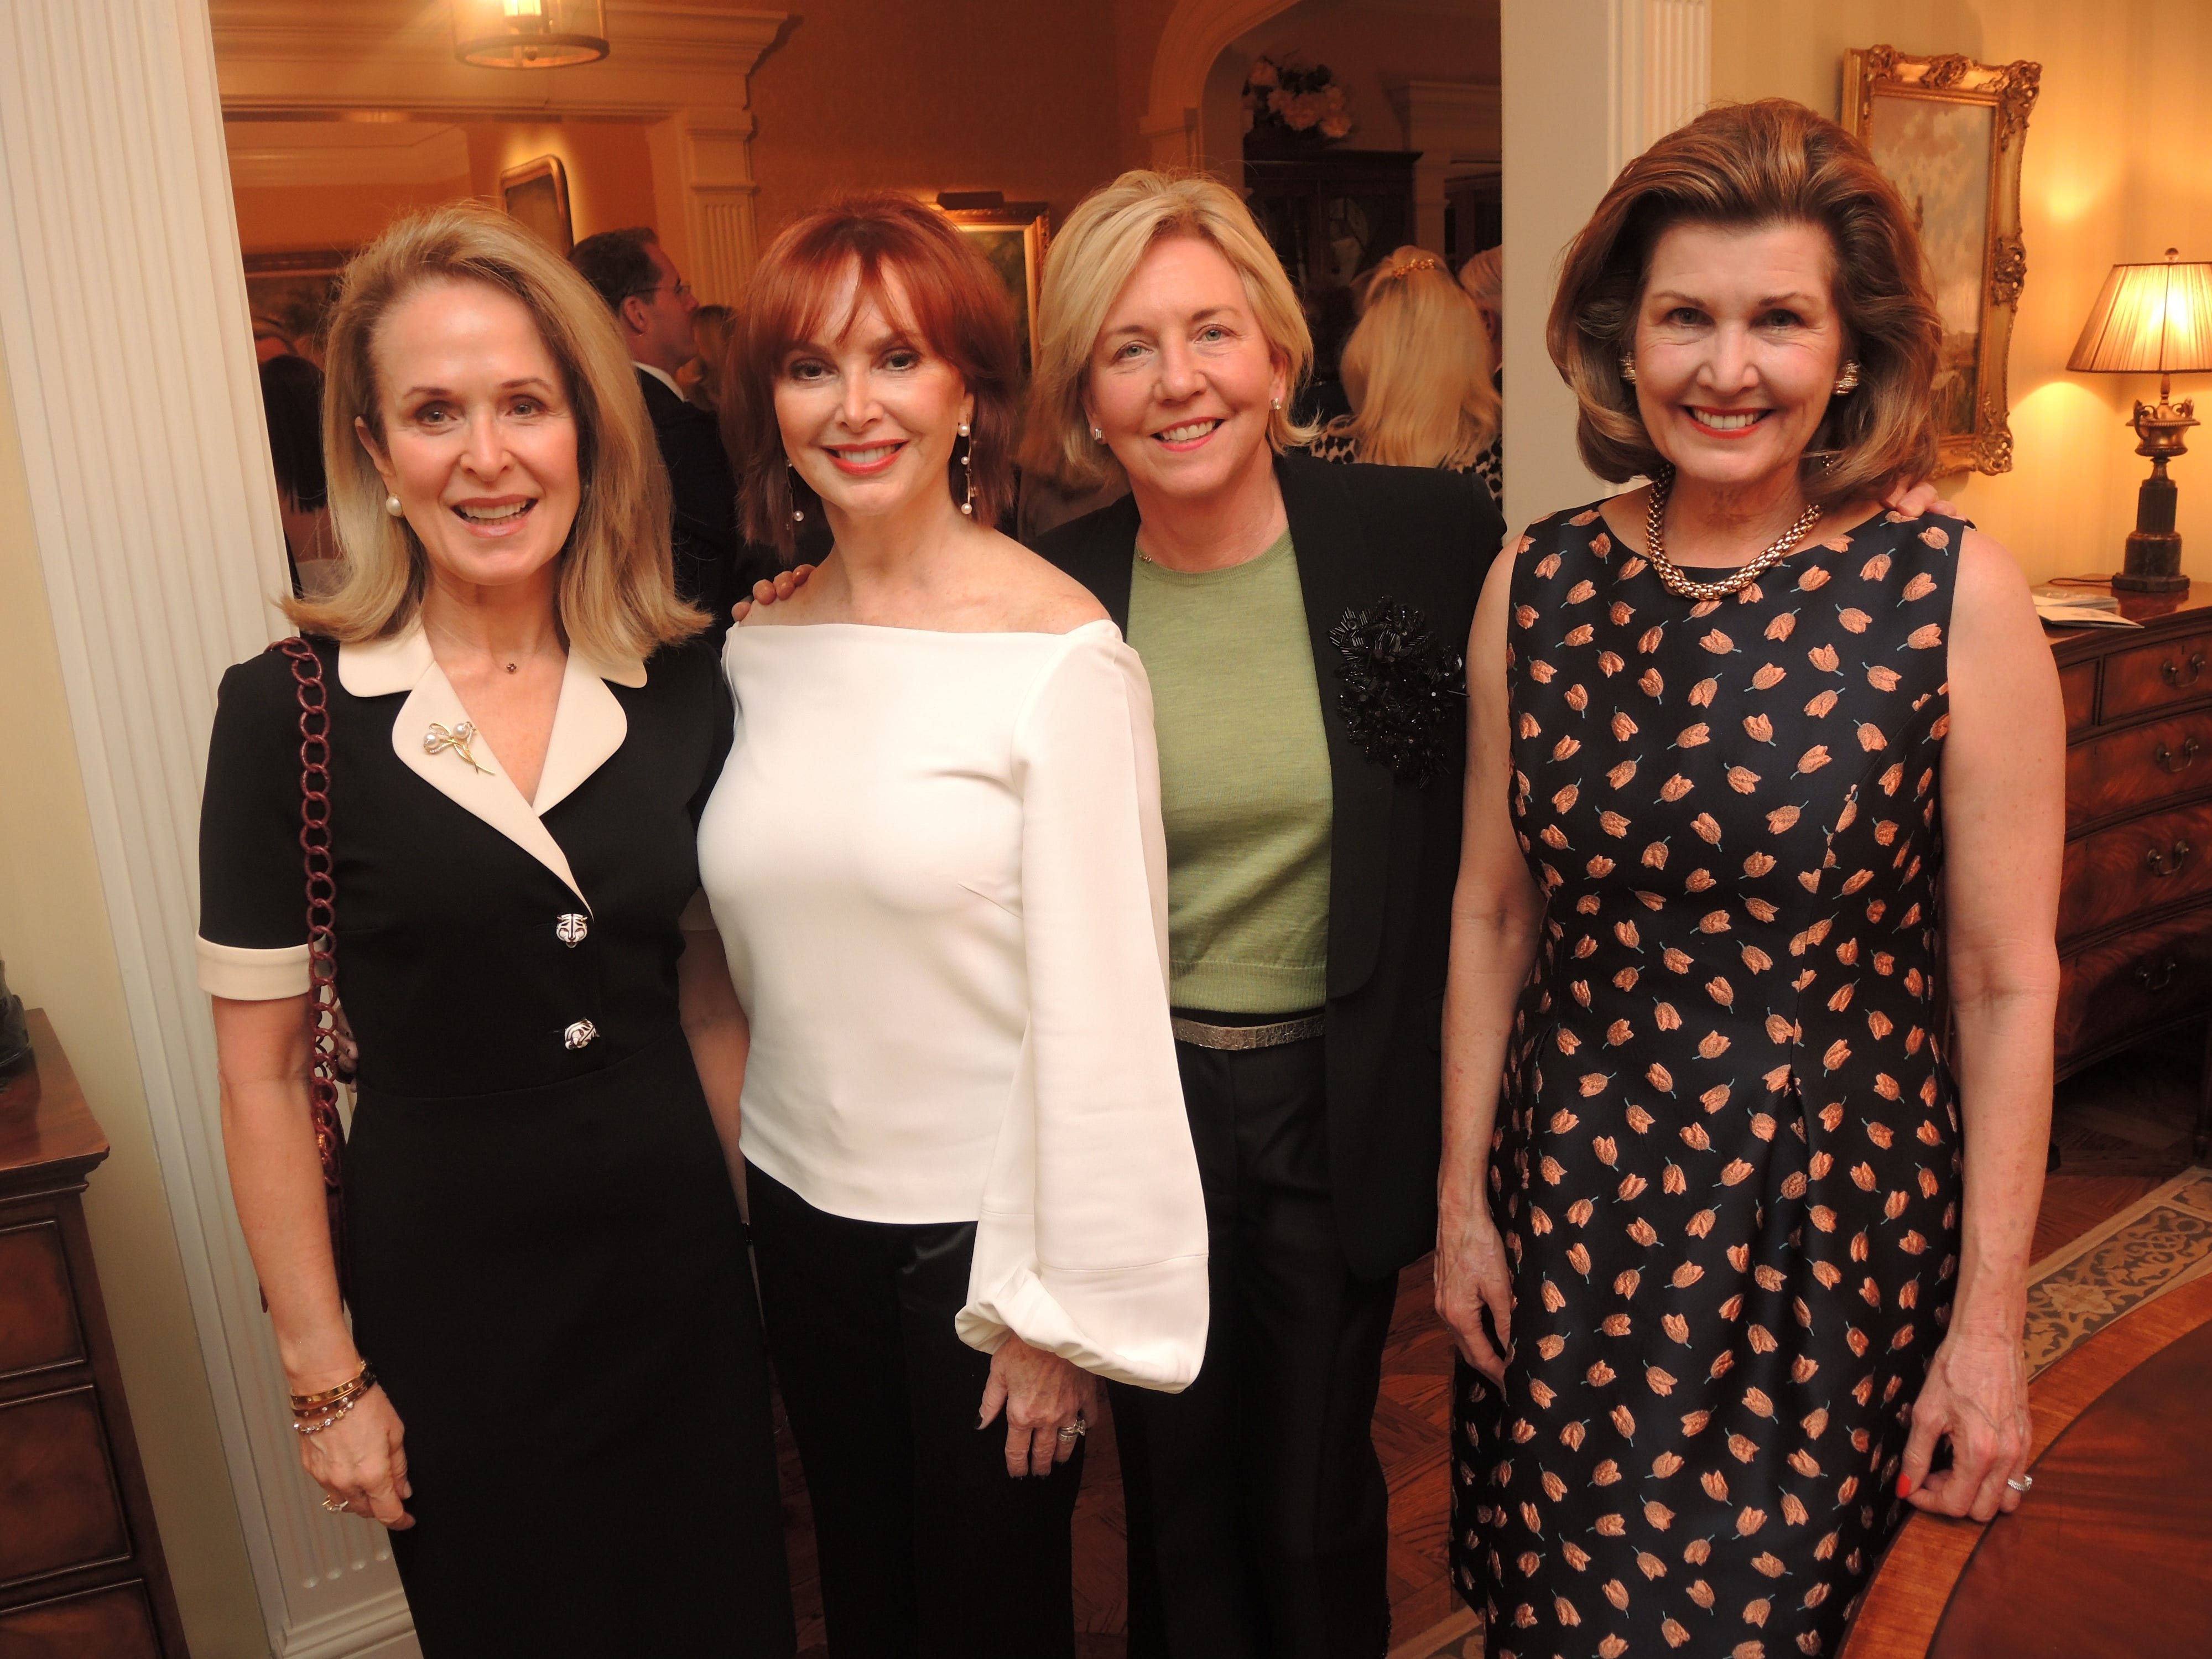 Lisa Manning, left, Sandra Lipman, Mary Spalding and Laura Niewold at the Swan Ball 2019 Unveiling, held at the home of Kathy and Bobby Rolfe.